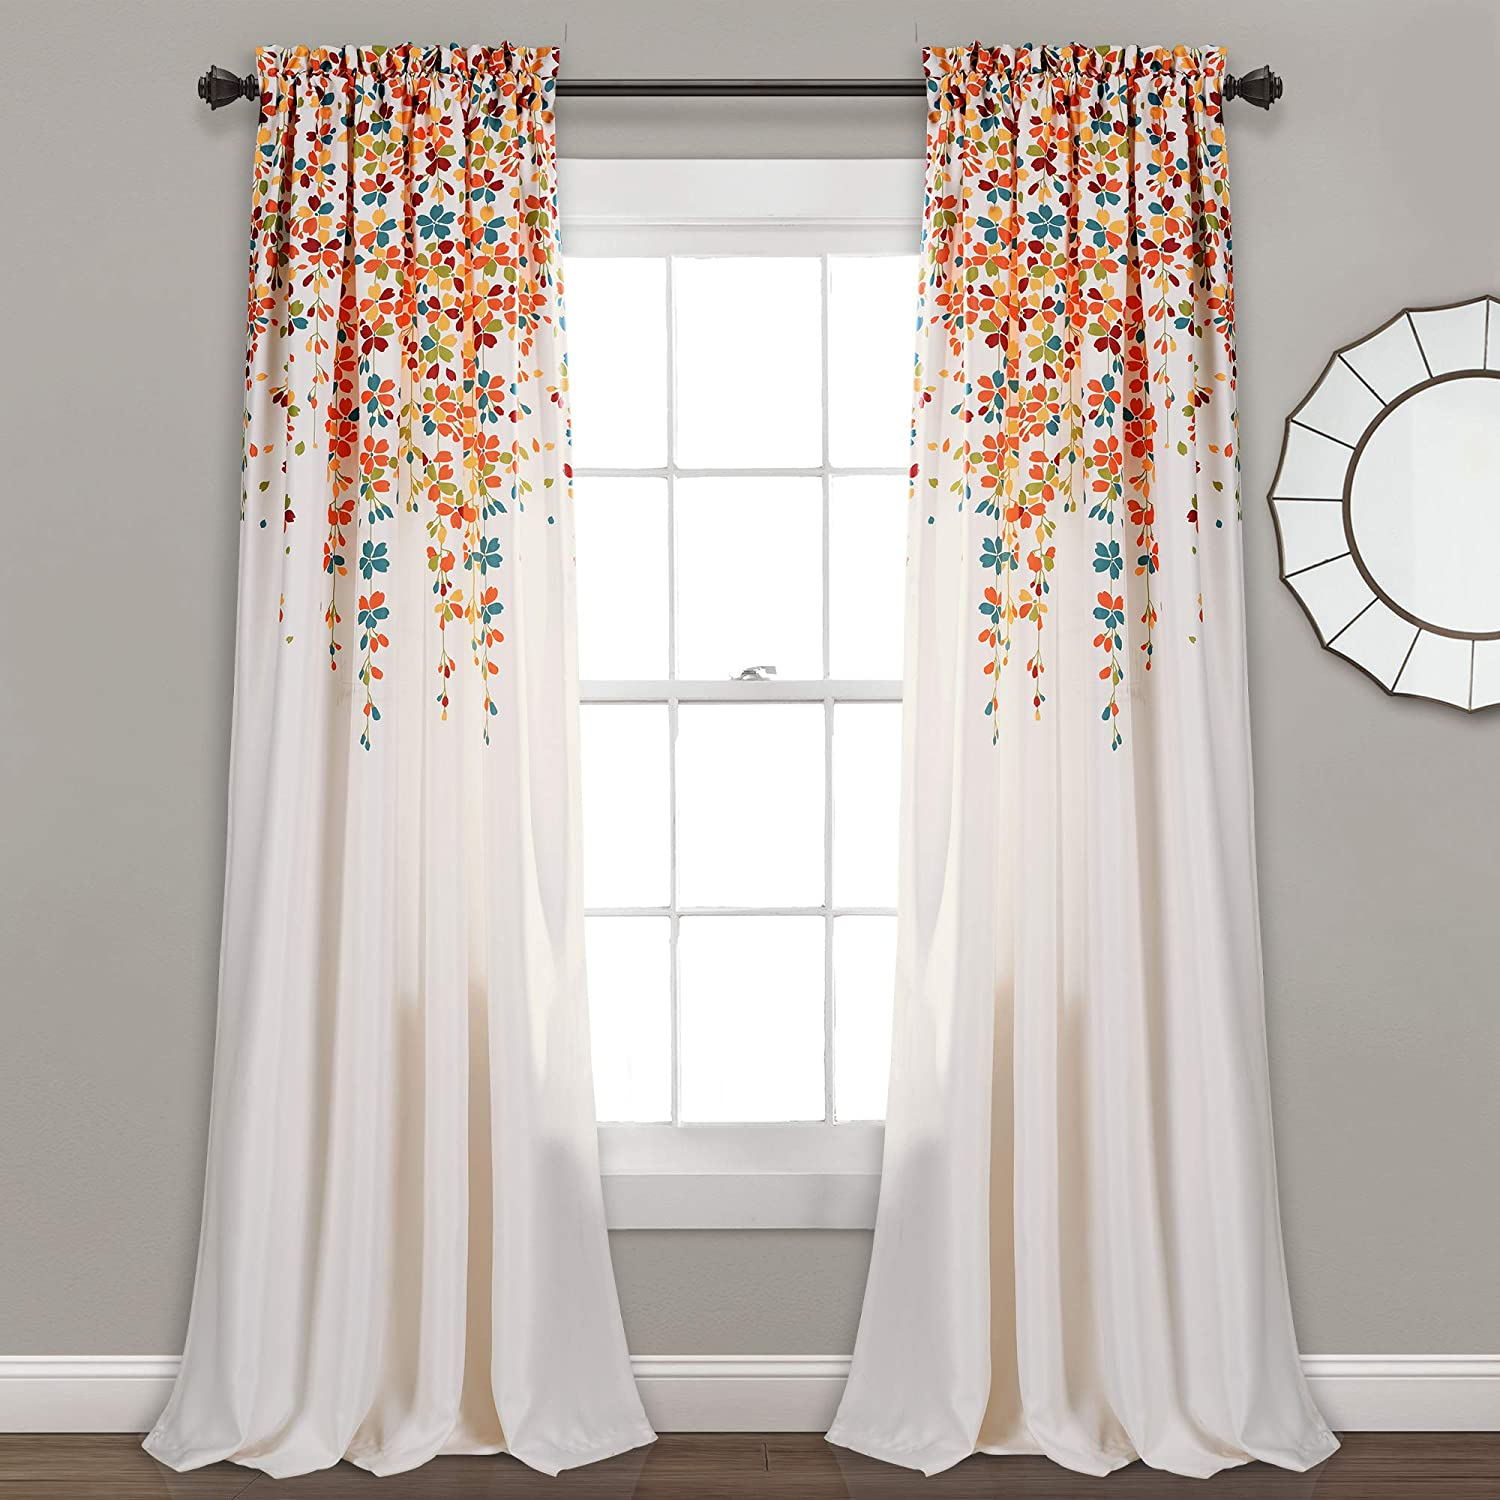 "Lush Decor Weeping Flowers Room Darkening Window Panel Curtain Set (Pair), 84"" x 52"", Turquoise and Tangerine"